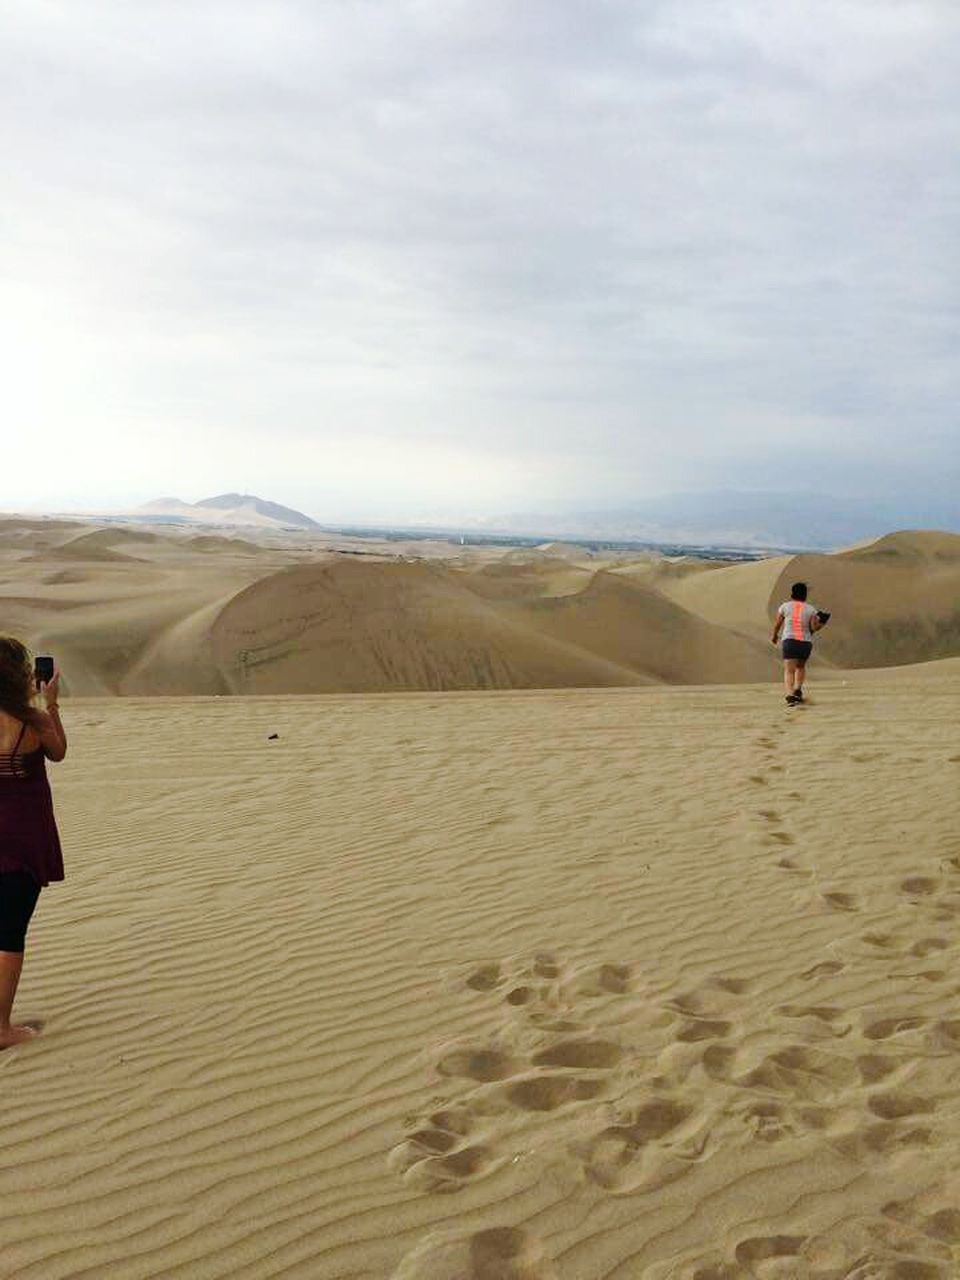 sand, desert, two people, nature, sky, sand dune, landscape, outdoors, day, beach, arid climate, scenics, women, adult, people, men, real people, standing, adults only, young adult, mountain, friendship, only men